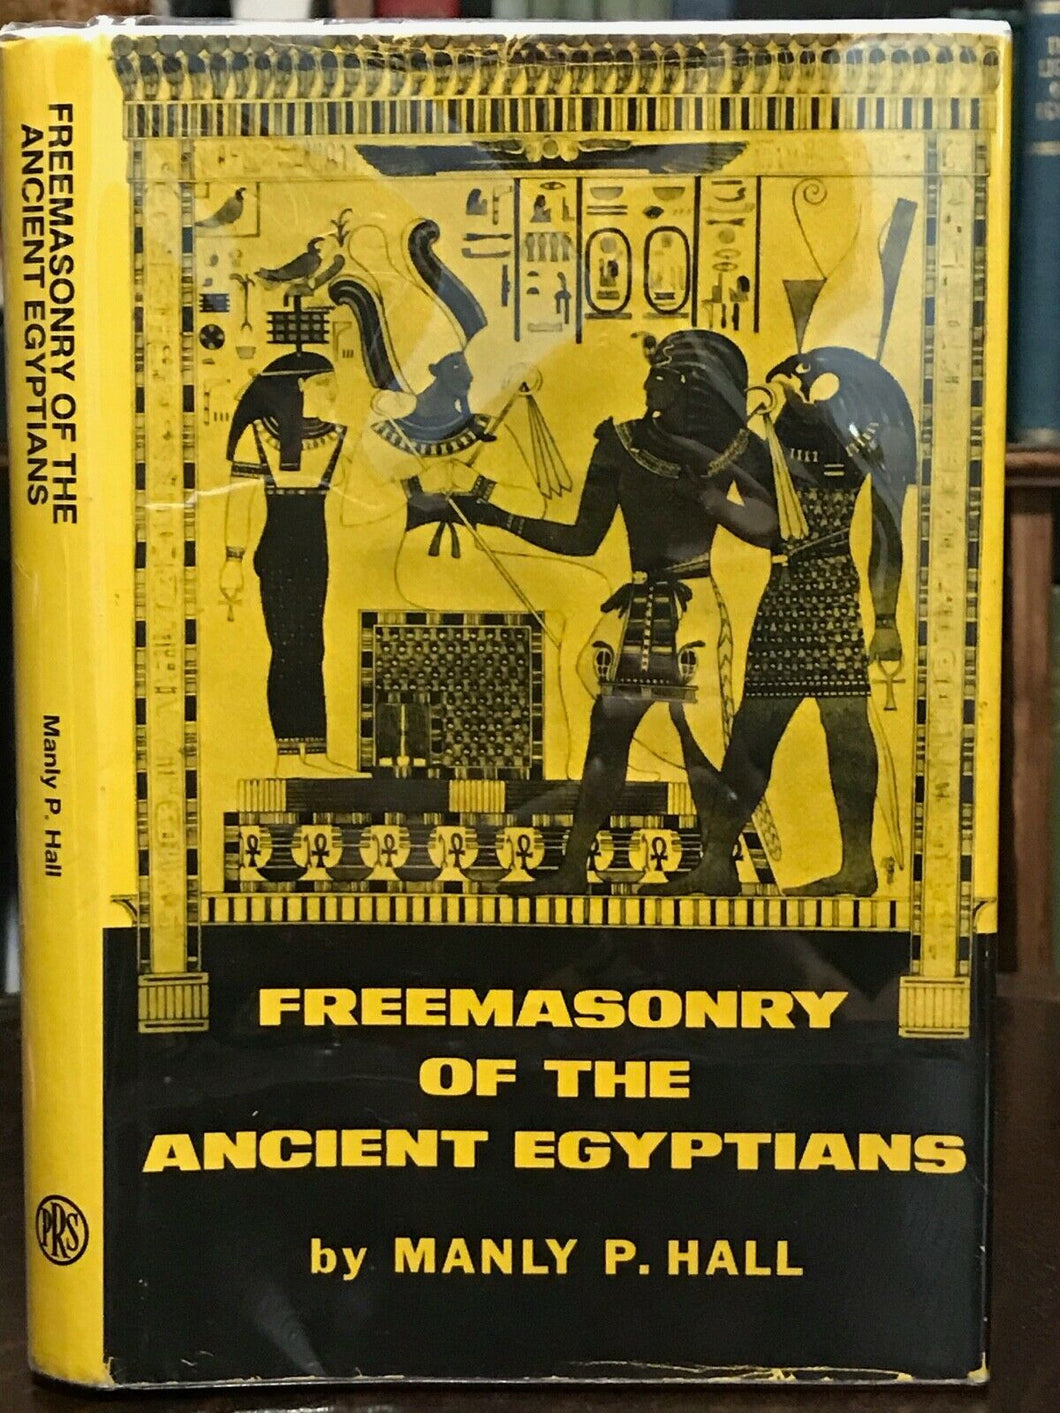 FREEMASONRY OF THE ANCIENT EGYPTIANS, Manly P. Hall, 1965 - ISIS MAGICK OCCULT